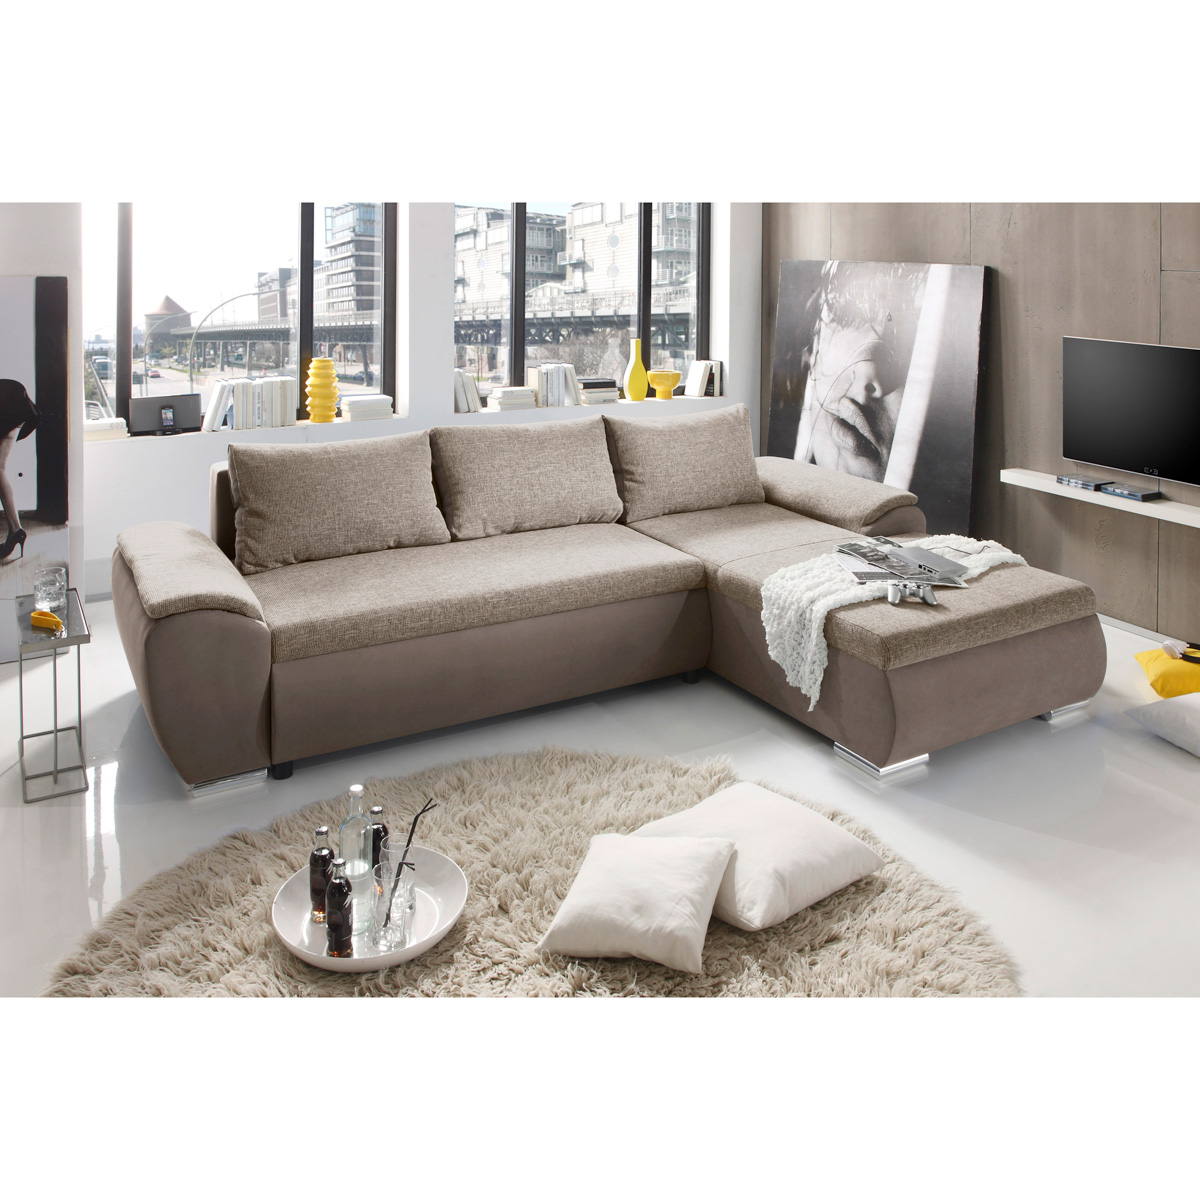 ecksofa game sofa auswahl petrol braun beige schwarz anthrazit beleuchtung ebay. Black Bedroom Furniture Sets. Home Design Ideas